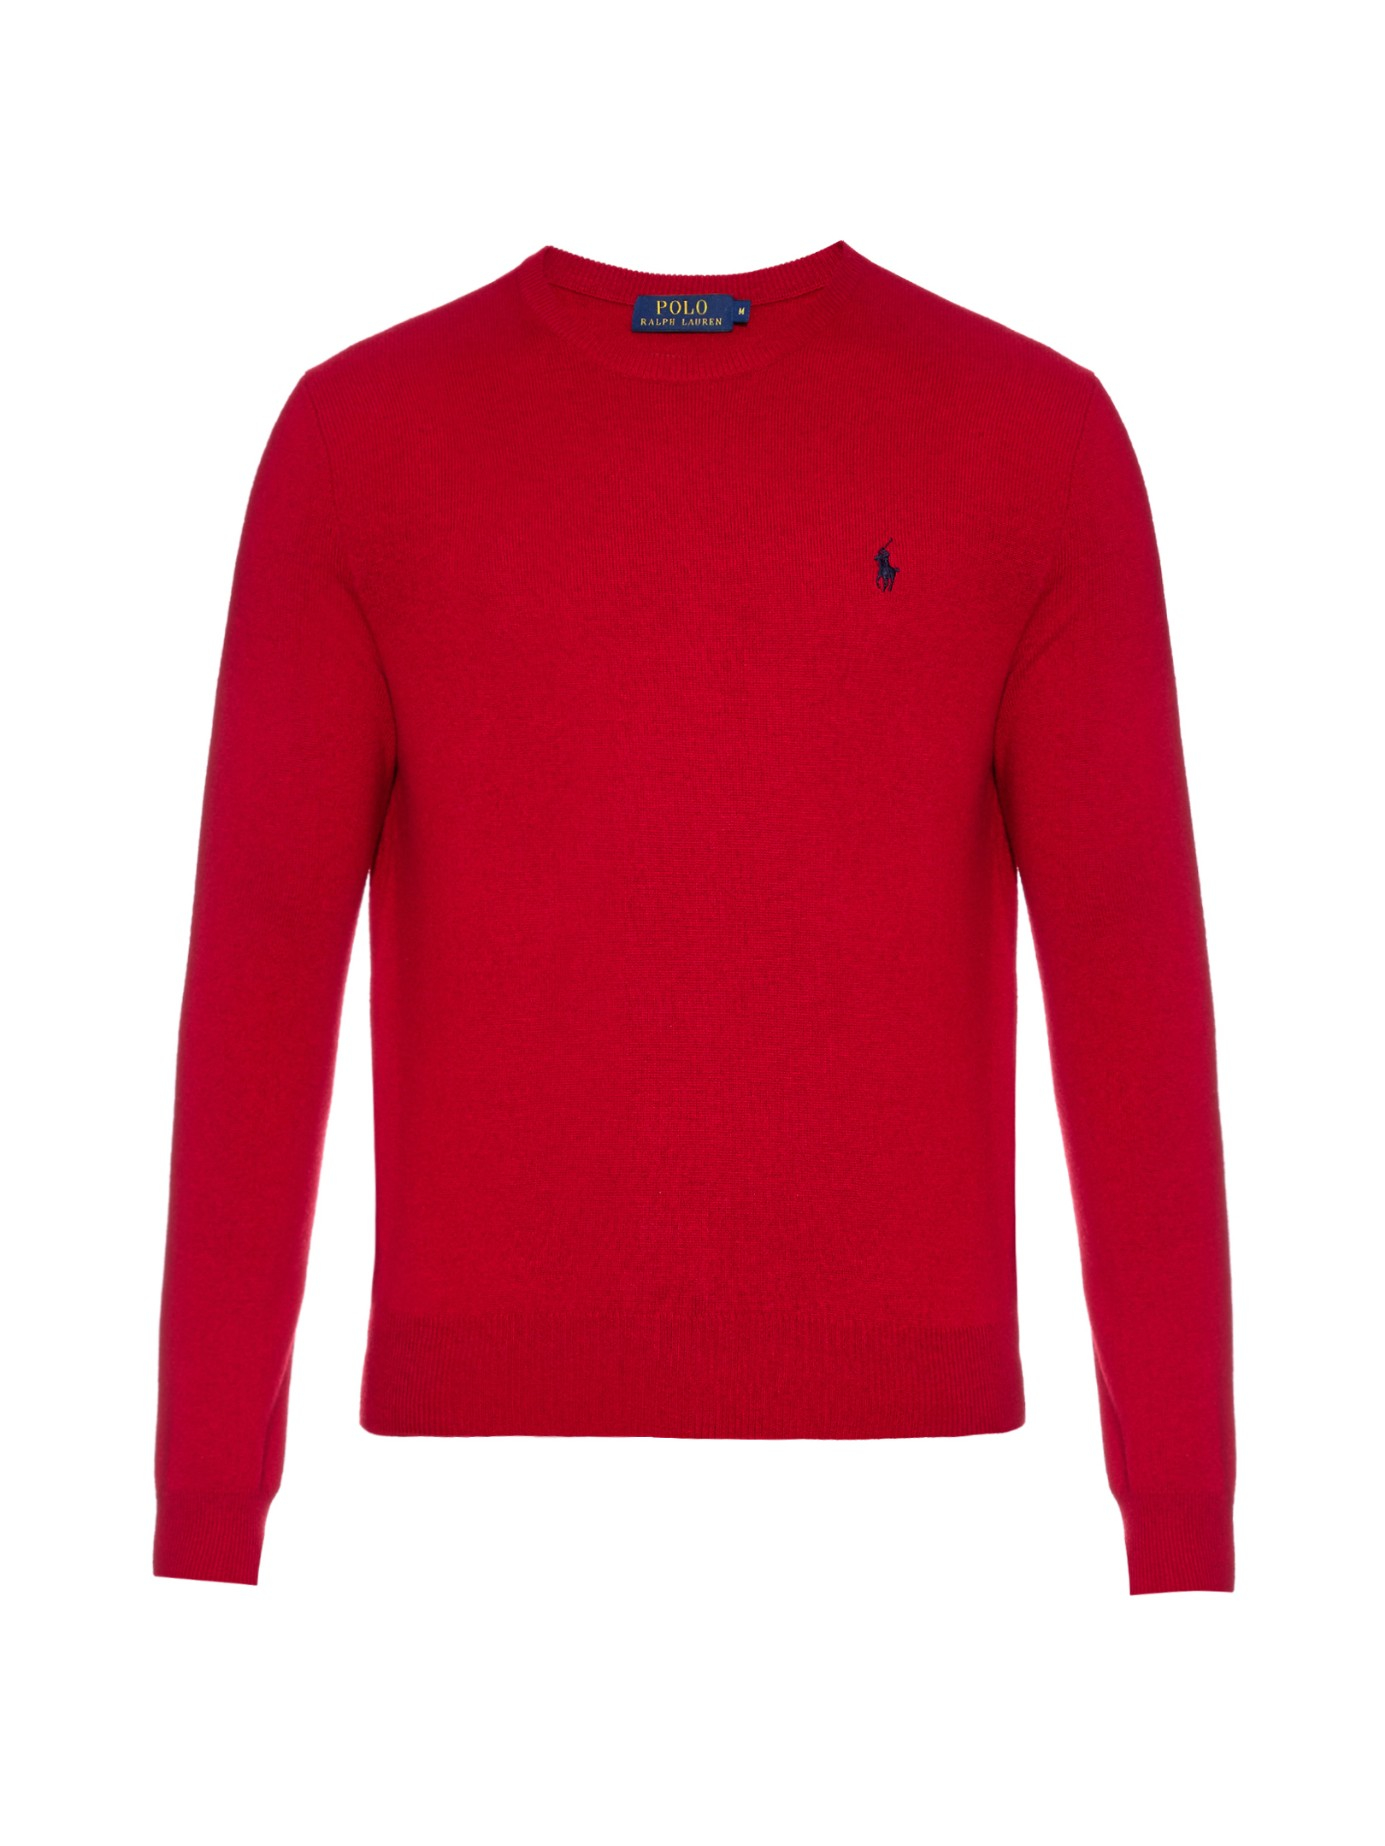 lyst polo ralph lauren crew neck long sleeved wool sweater in red for men. Black Bedroom Furniture Sets. Home Design Ideas